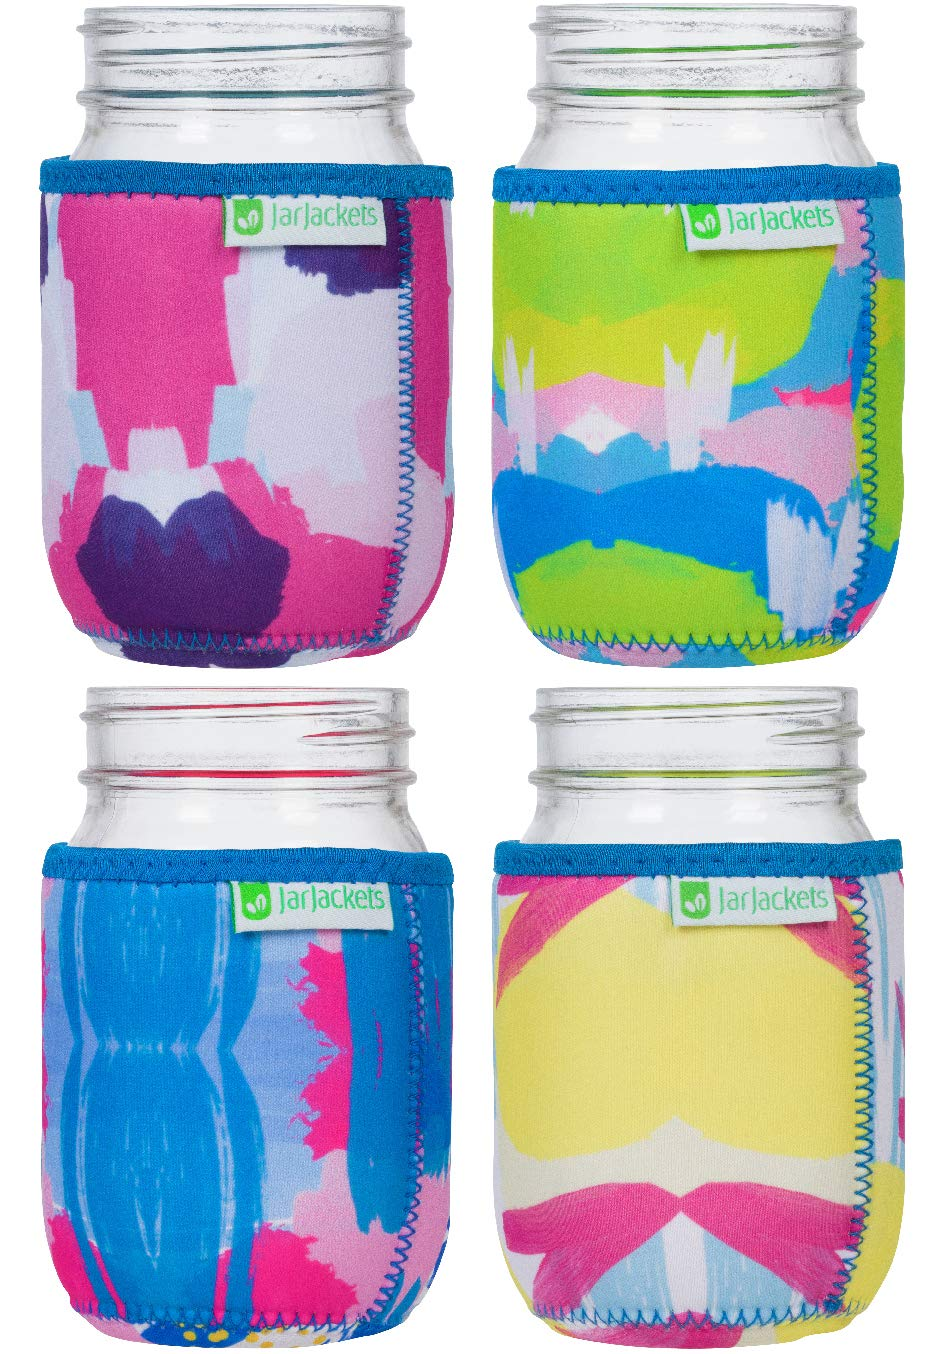 JarJackets Neoprene Mason Jar Protector Sleeve/Koozie - Fits 16oz (1 pint) Jars (4, Multicolor)